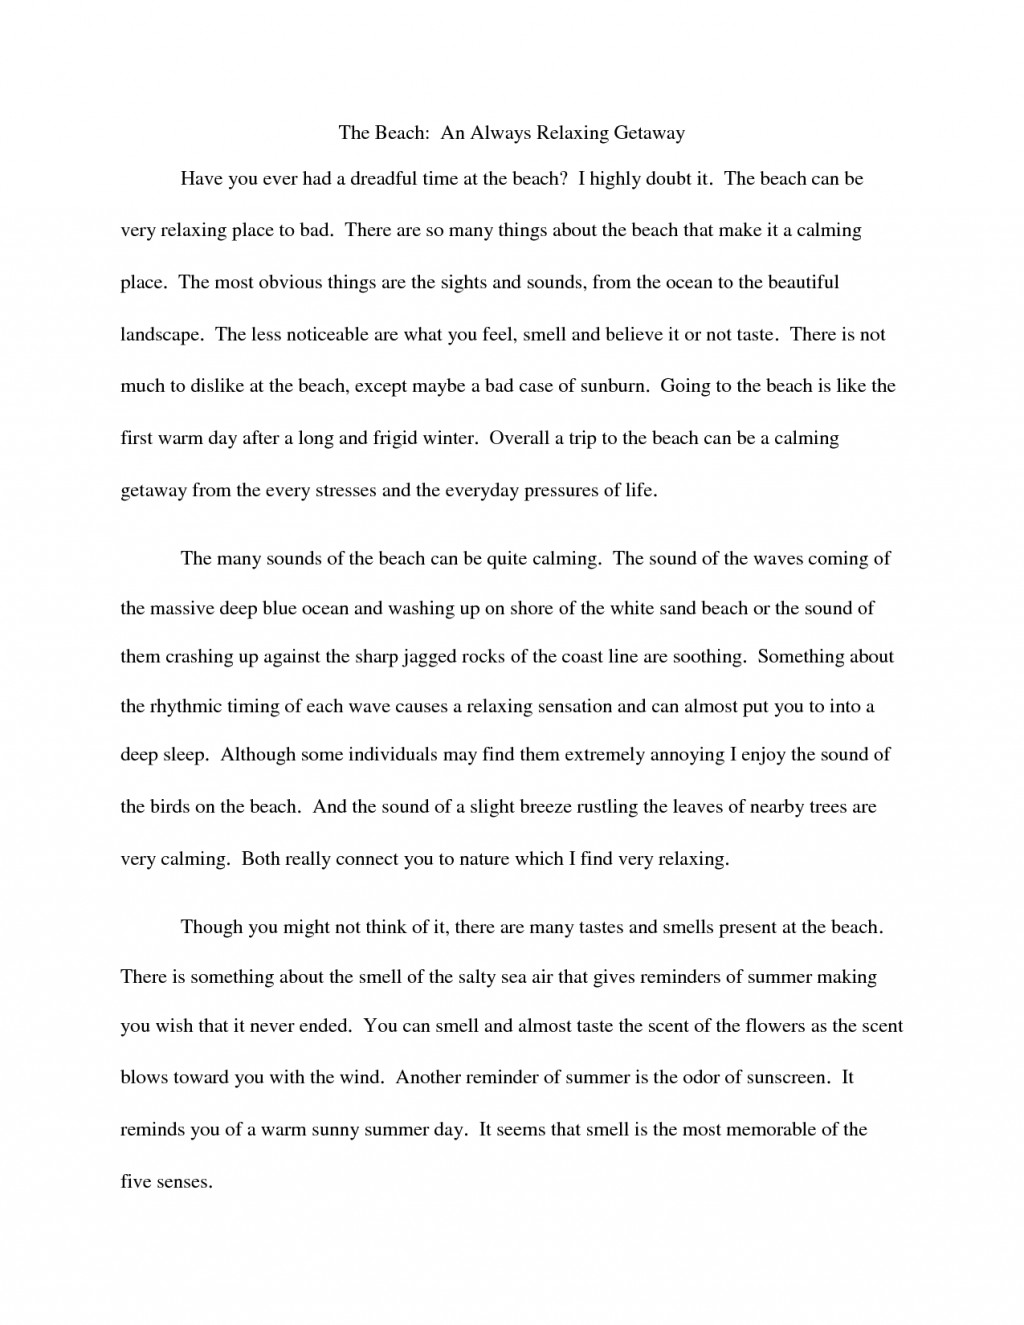 006 Essay Example Descriptive Beach Essays College That Stand Out Odvqltnc Short On The Sunset Paper Barefoot About Walk Vacation Narrative At Night Free Unbelievable Examples For Grade 7 Middle School Sample Pdf Large